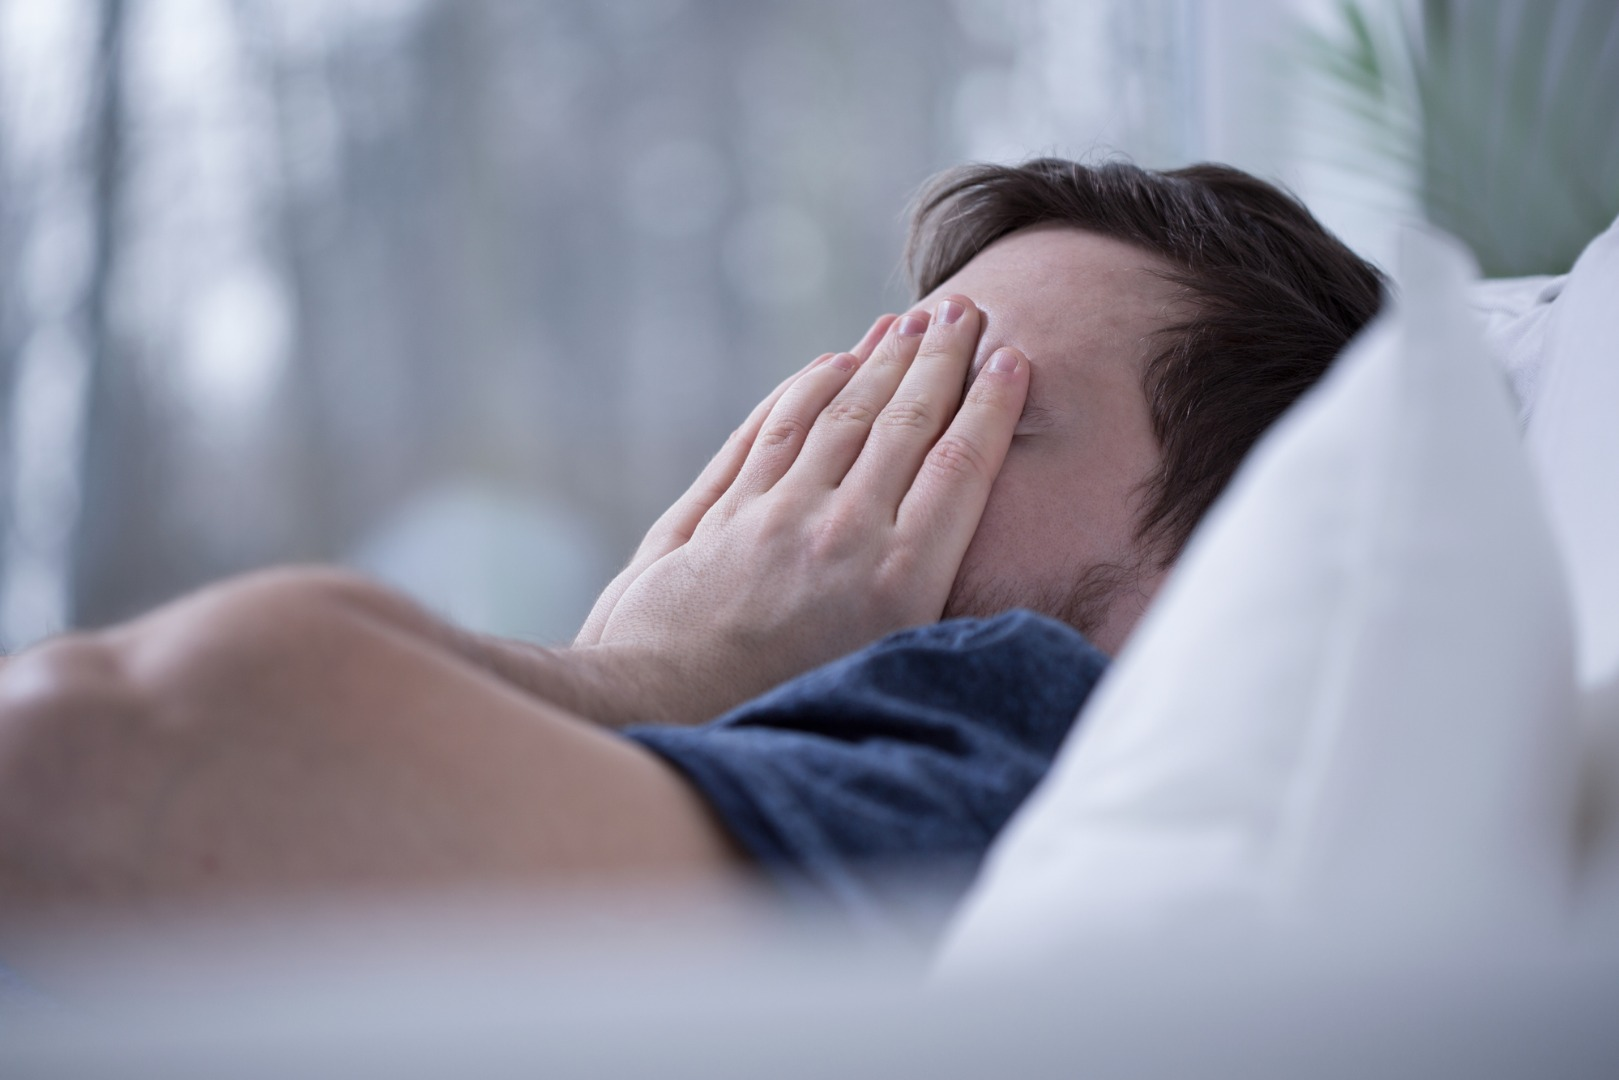 Obesity, hypertension and other metabolic disorders linked to irregular sleep patterns